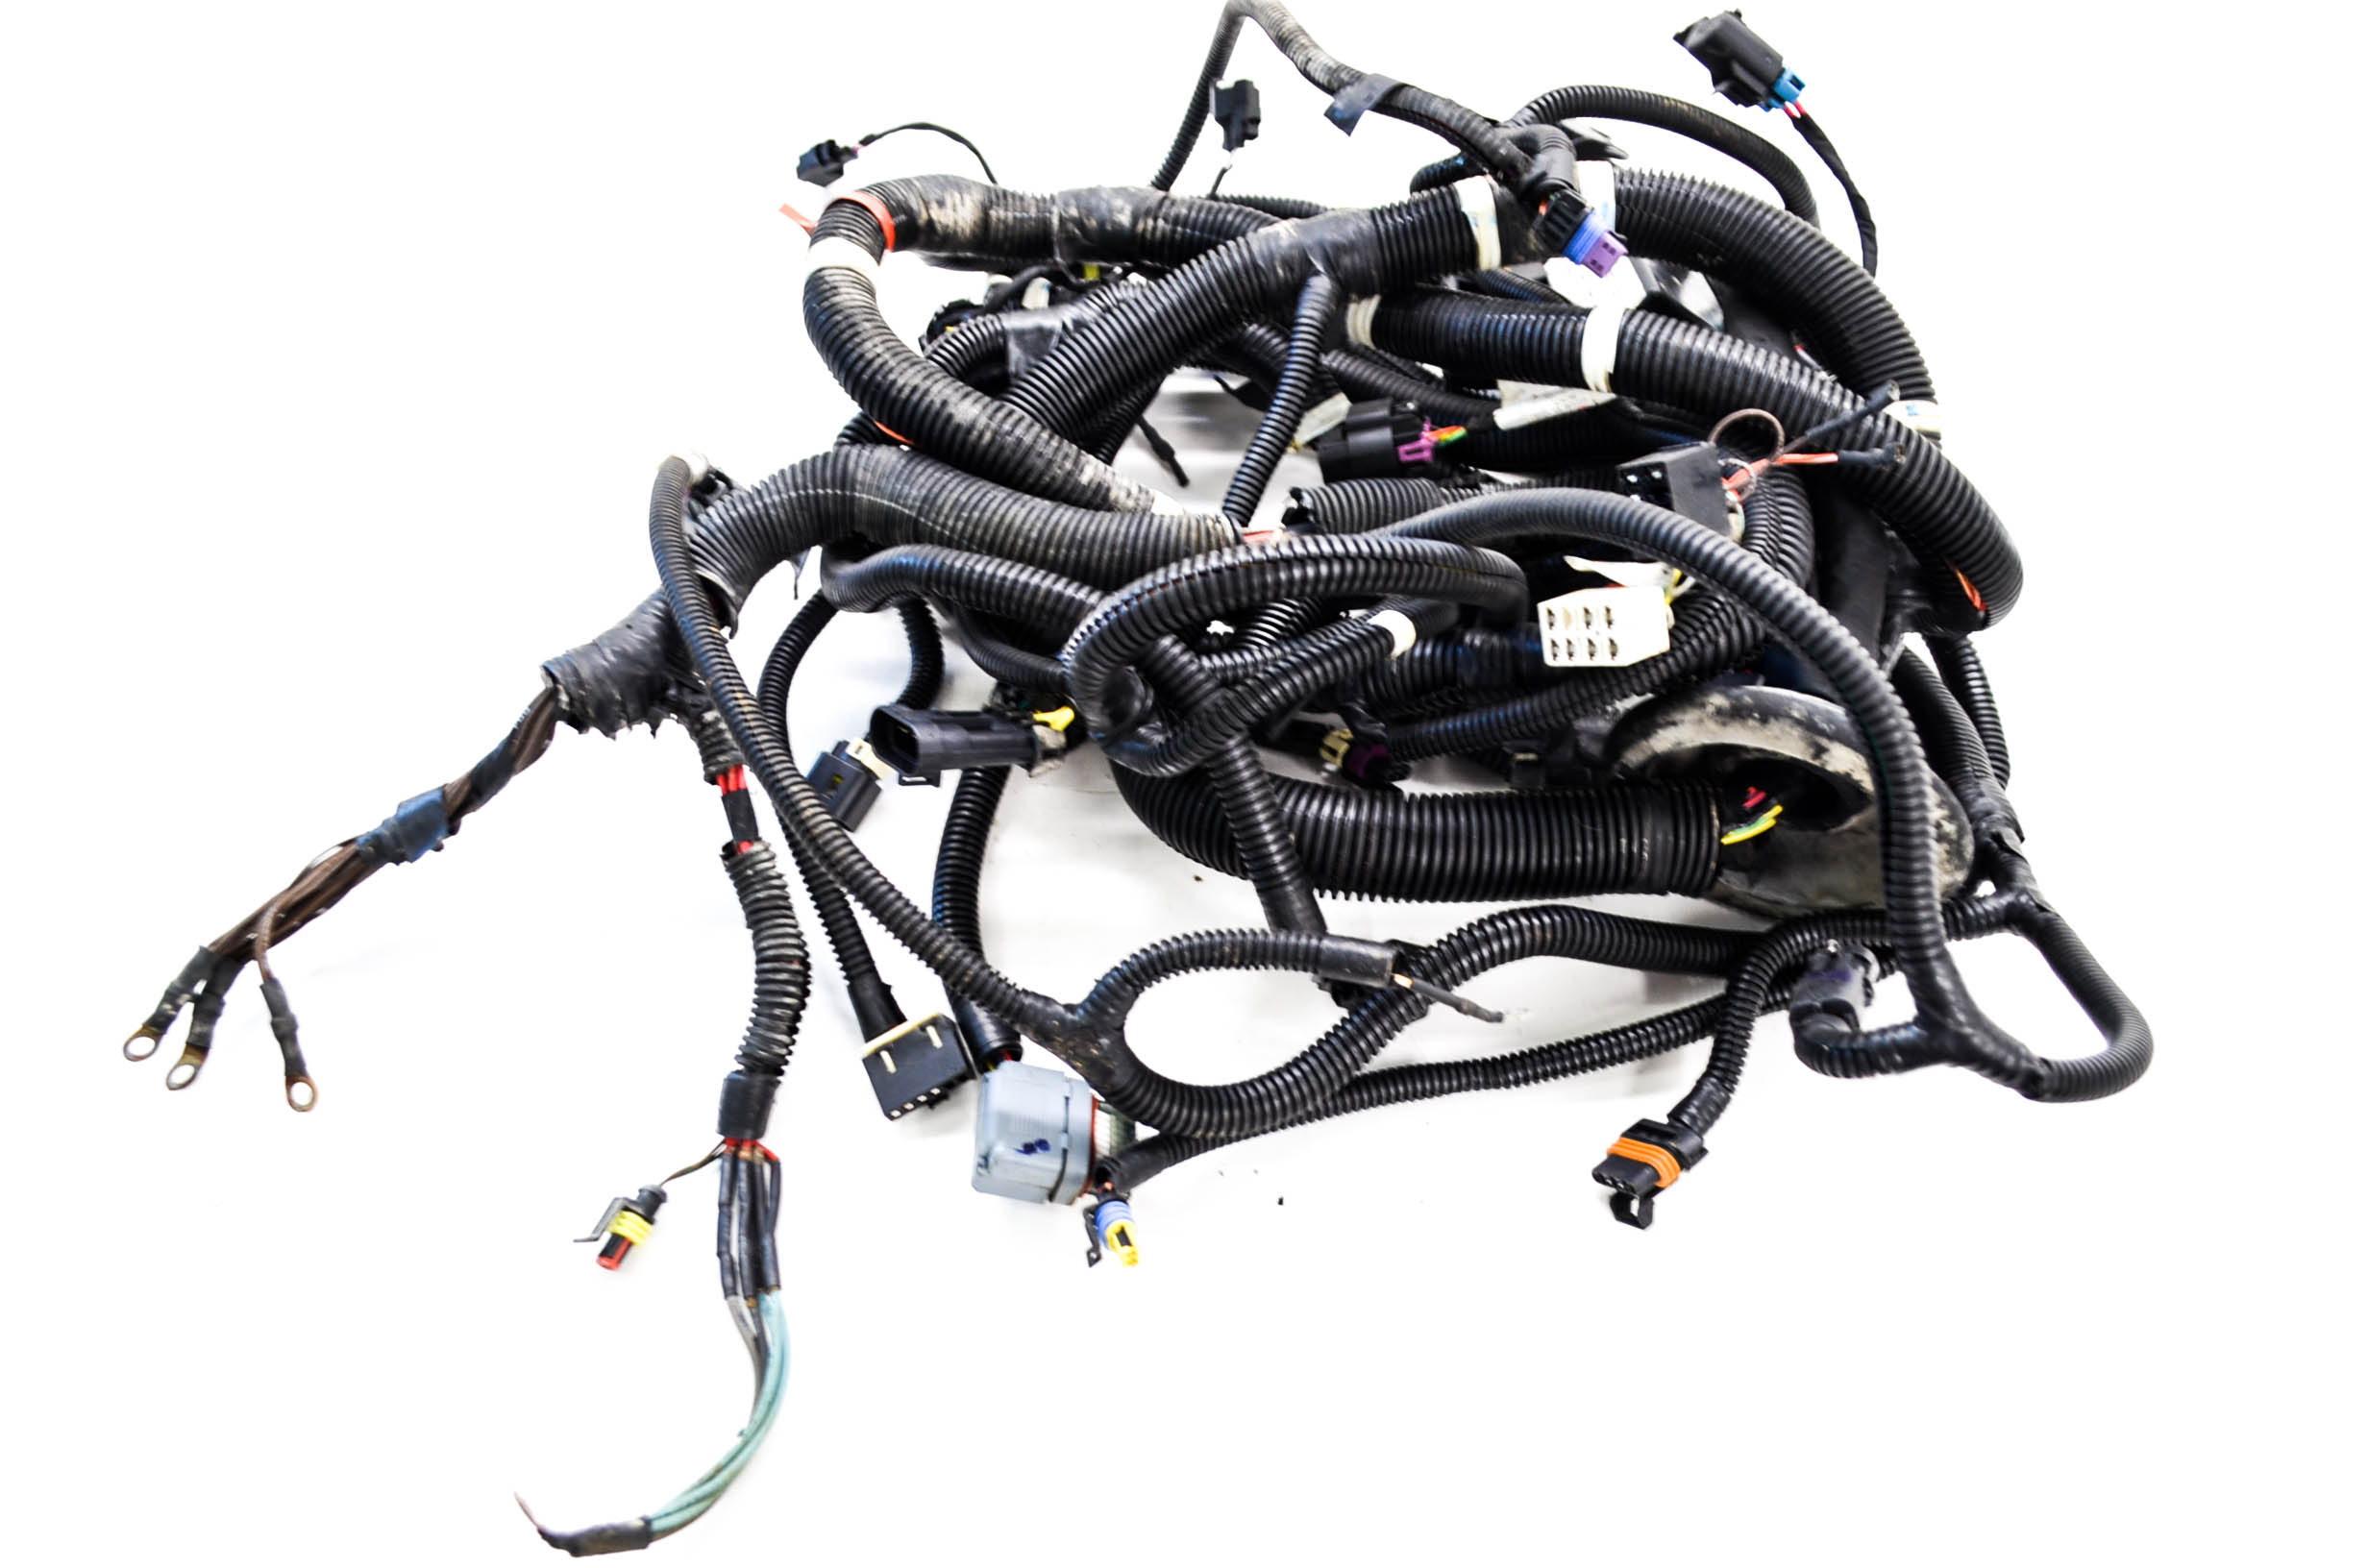 13 Polaris Ranger 900 4x4 XP Wire Harness Electrical Wiring